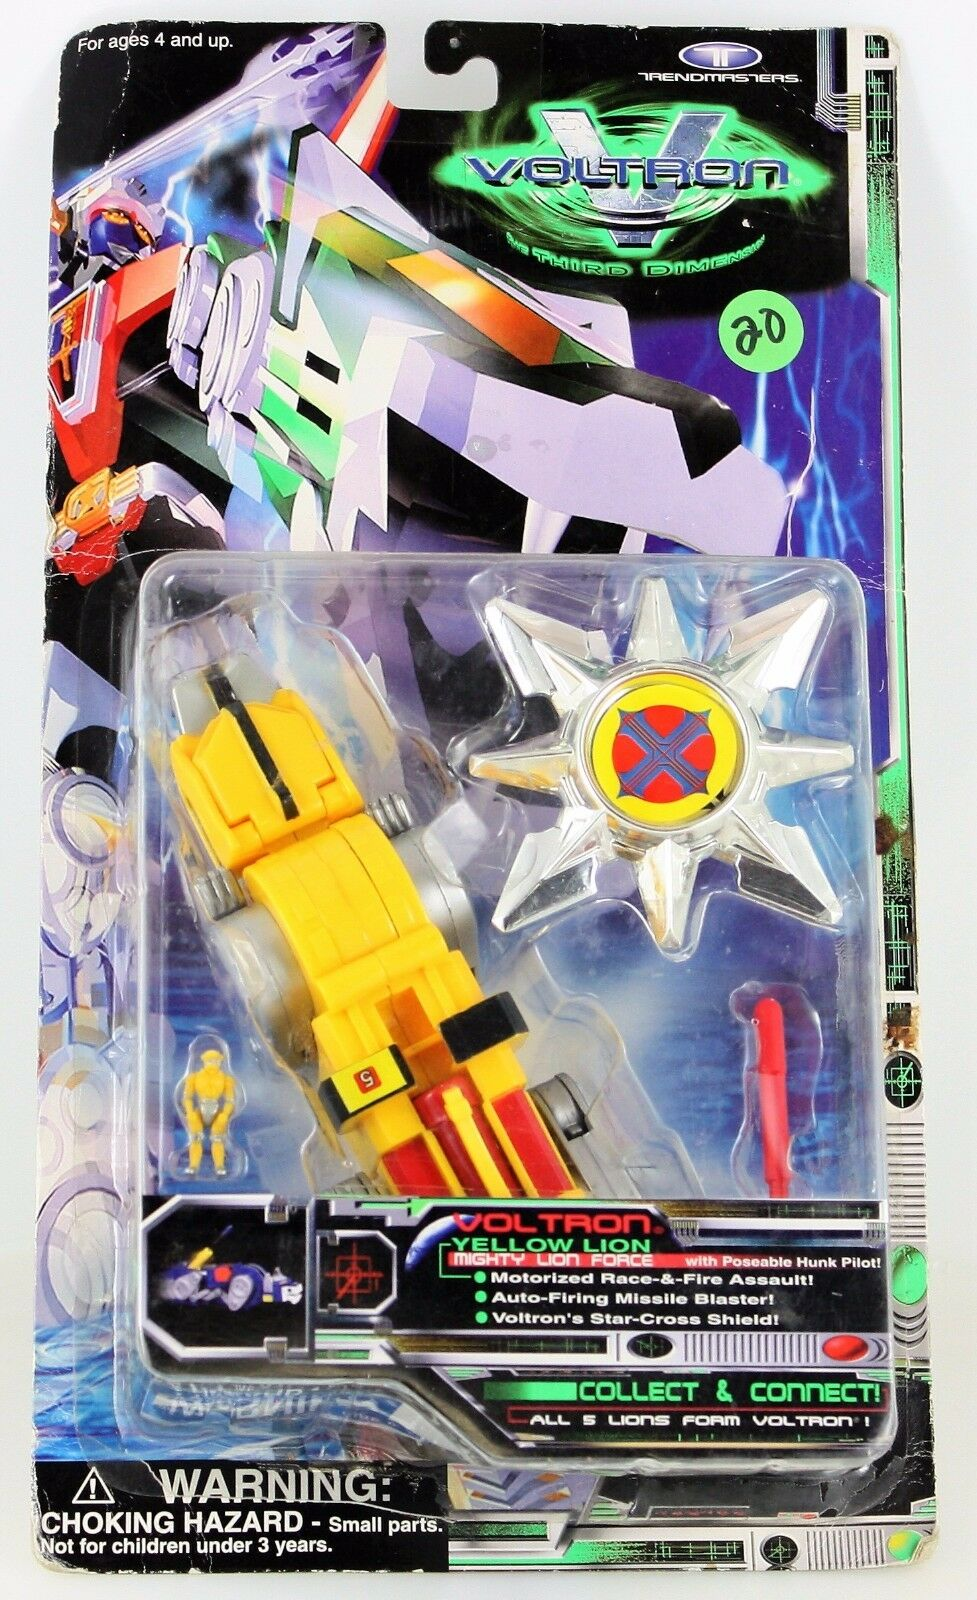 Voltron Third 3rd Dimension Yellow Lion Hunk Pilot Mighty Lion Trendmasters 1998